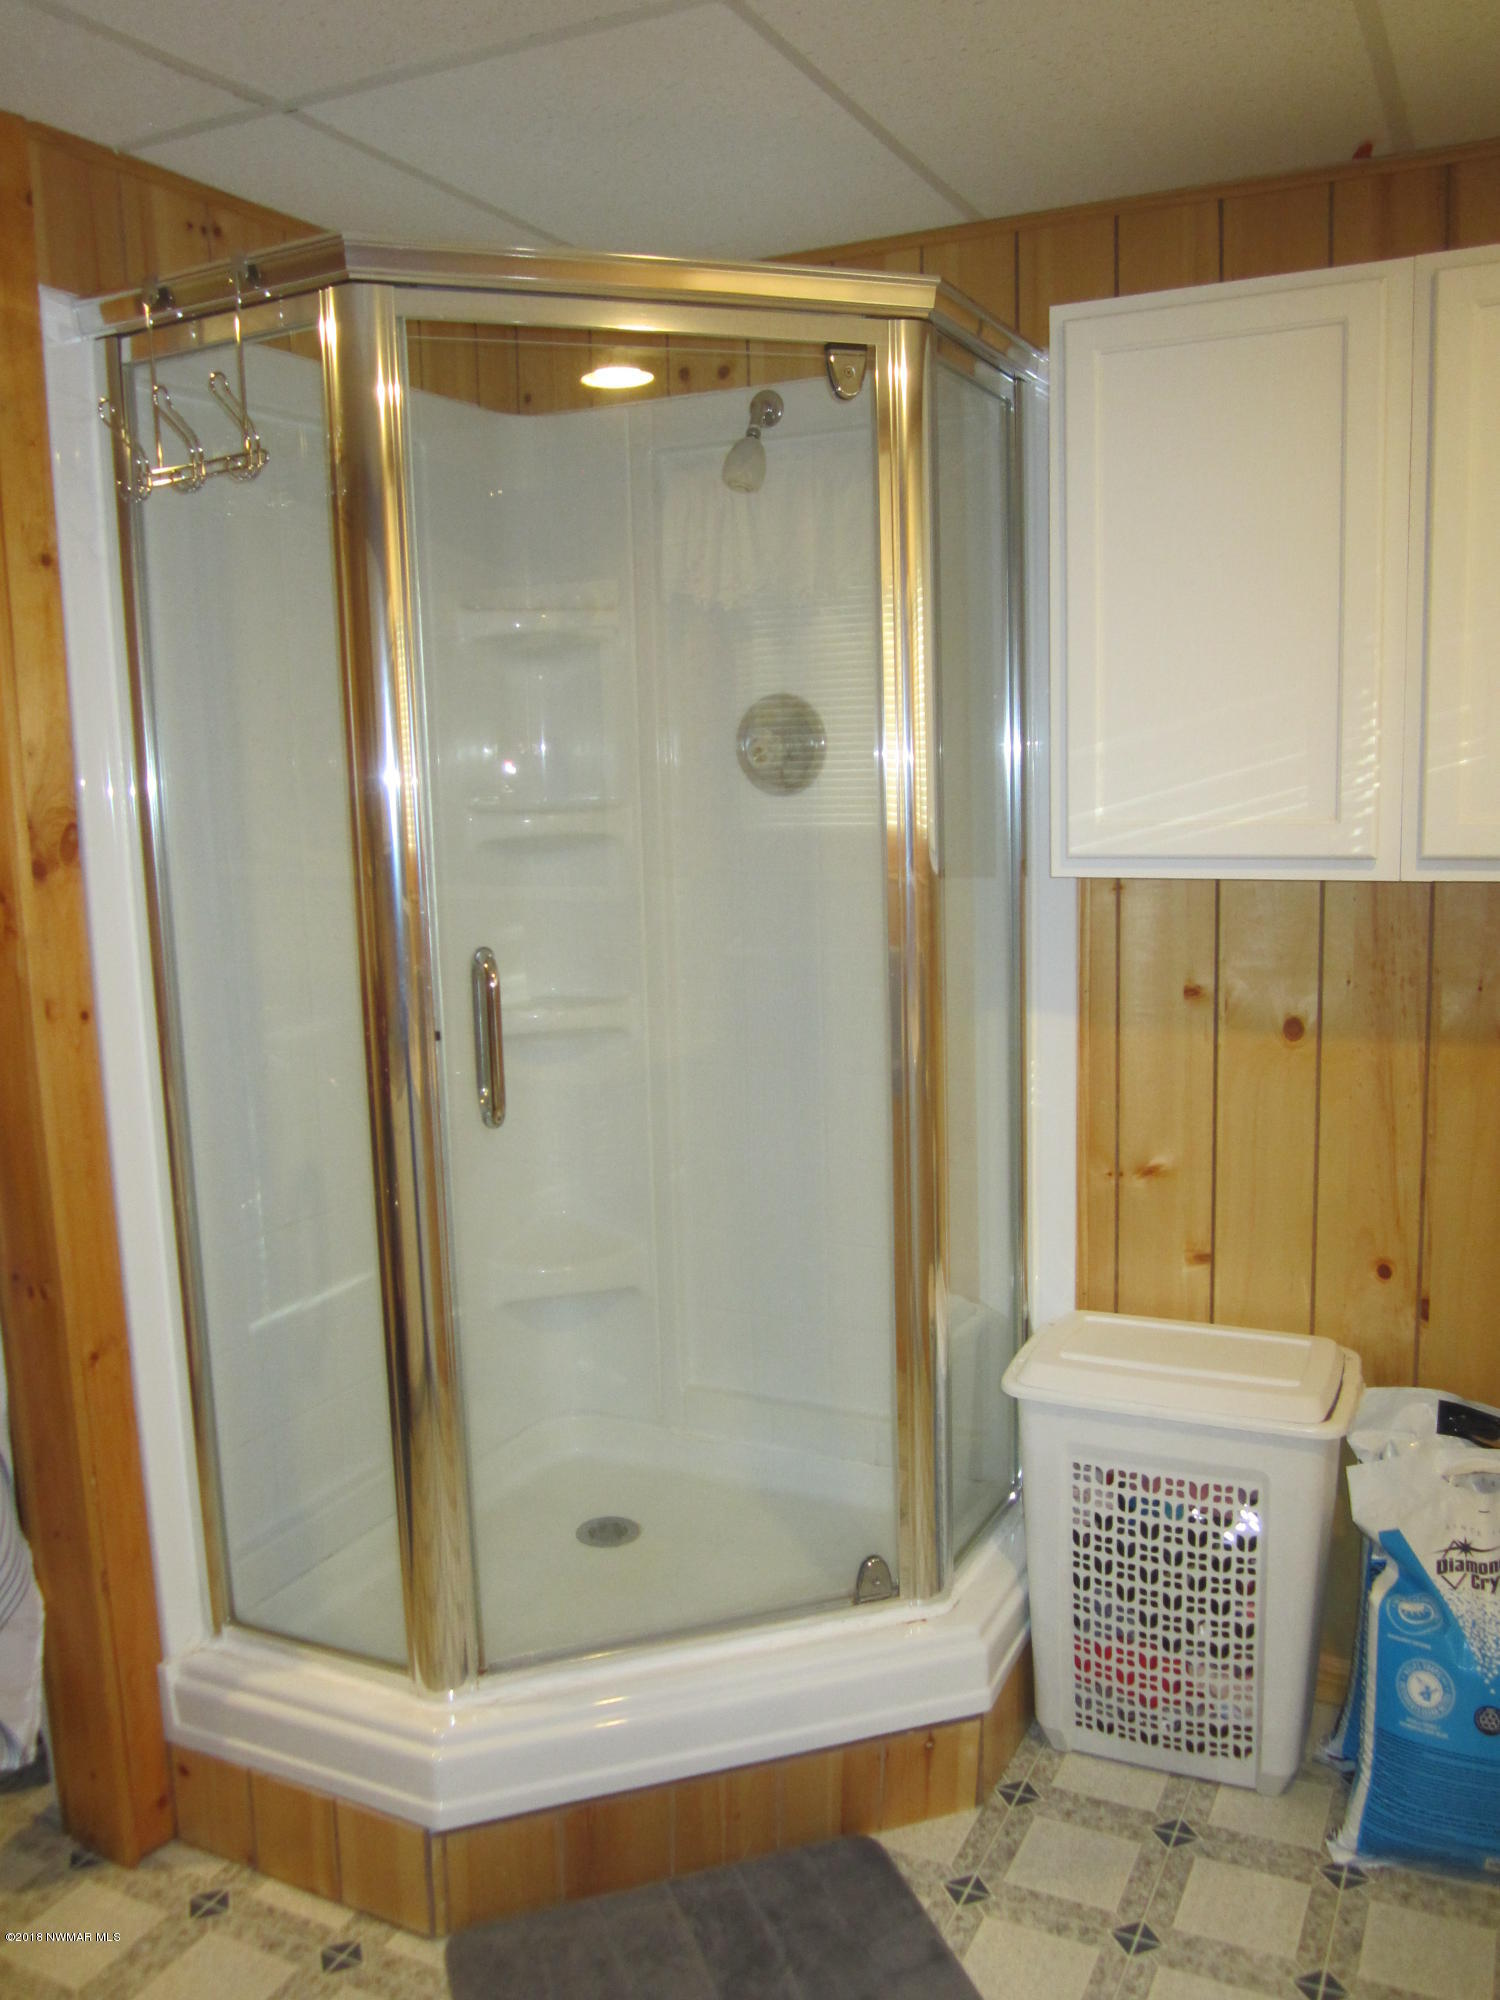 Basement shower-approx 5 yrs. old